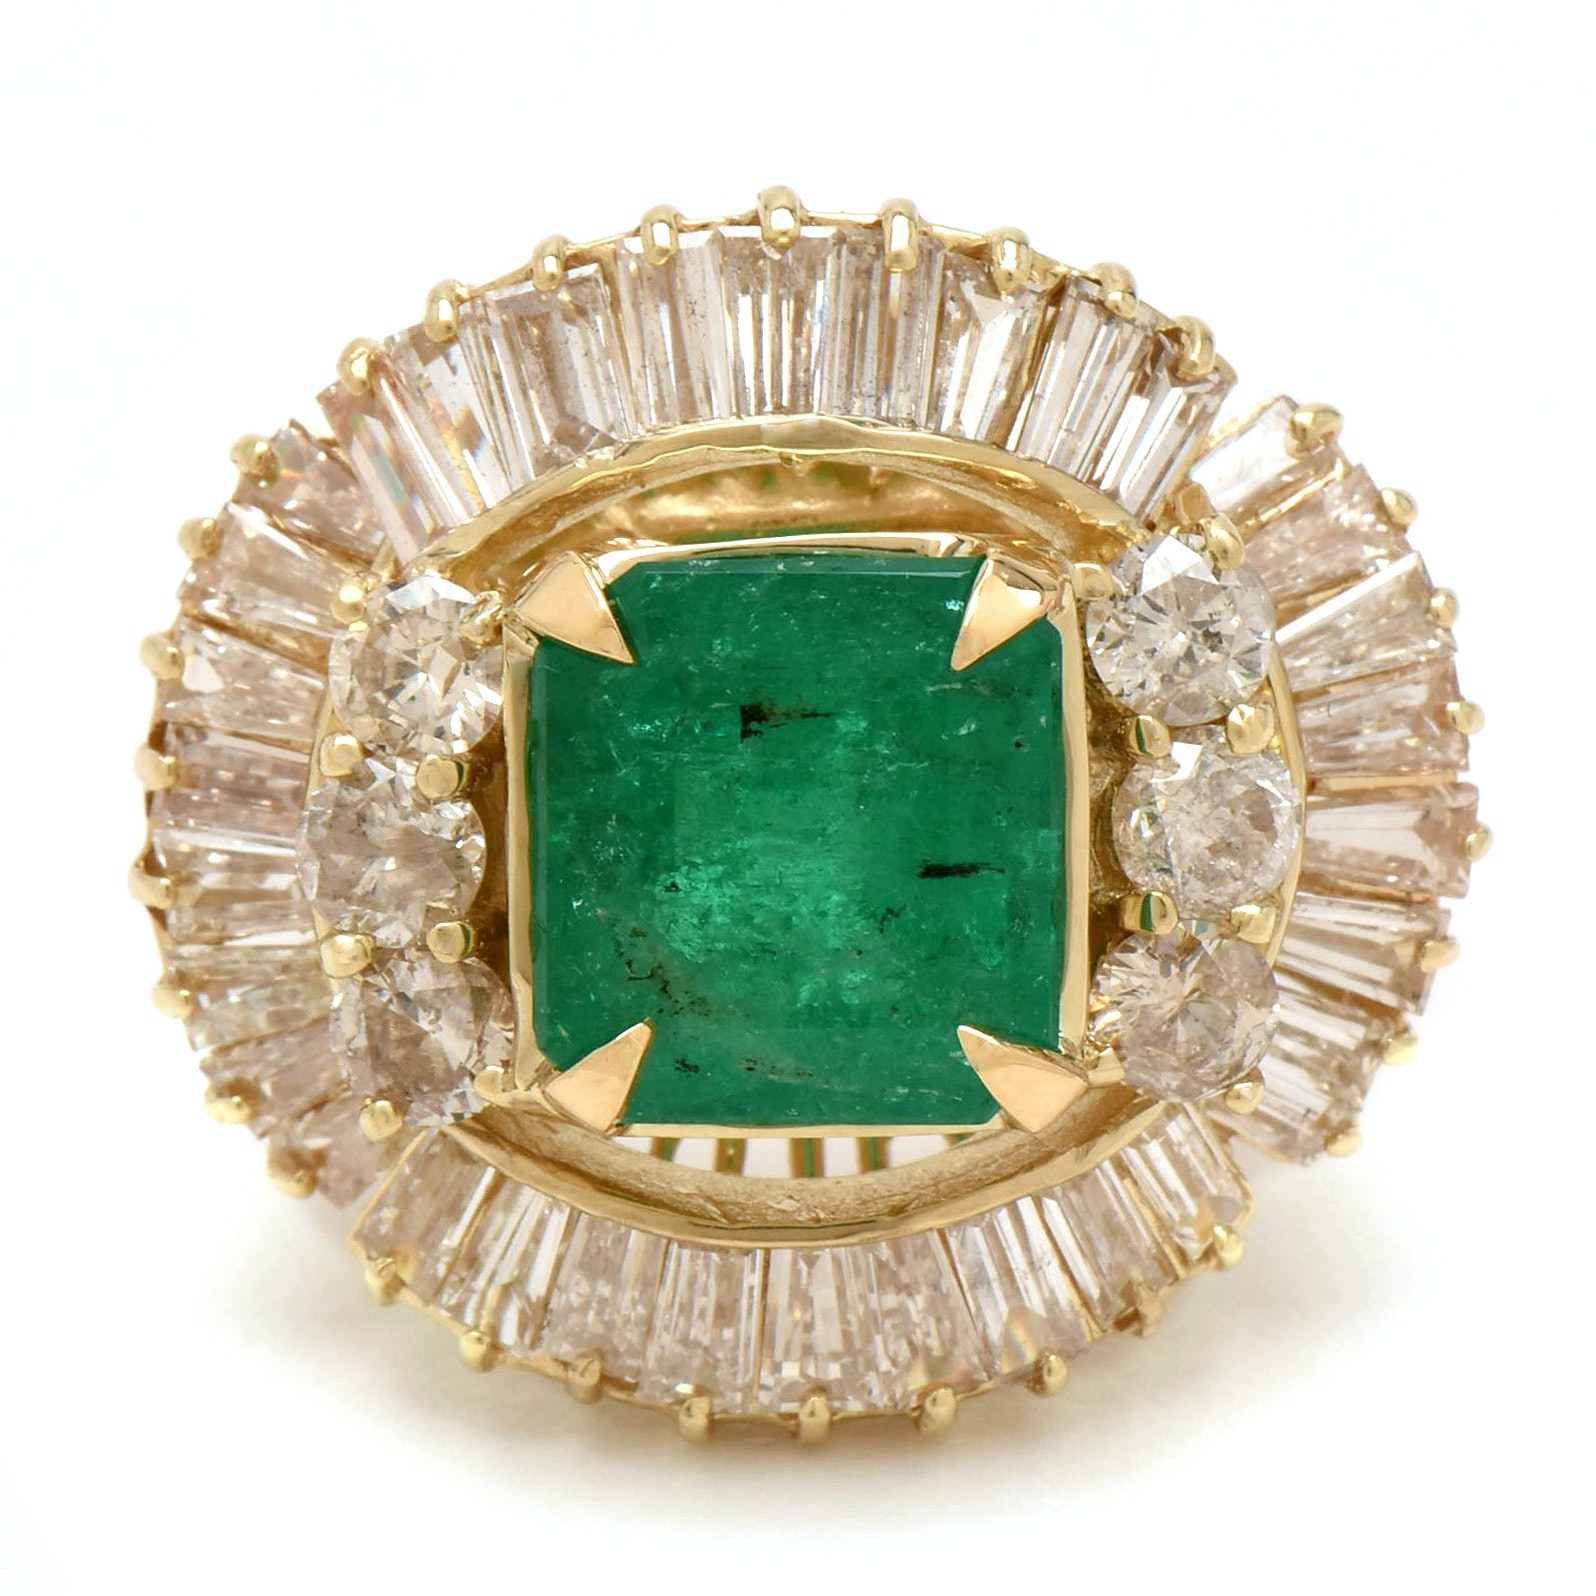 14K Yellow Gold 3.96 CT Emerald and 3.95 CTW Diamond Ring with AGL Report